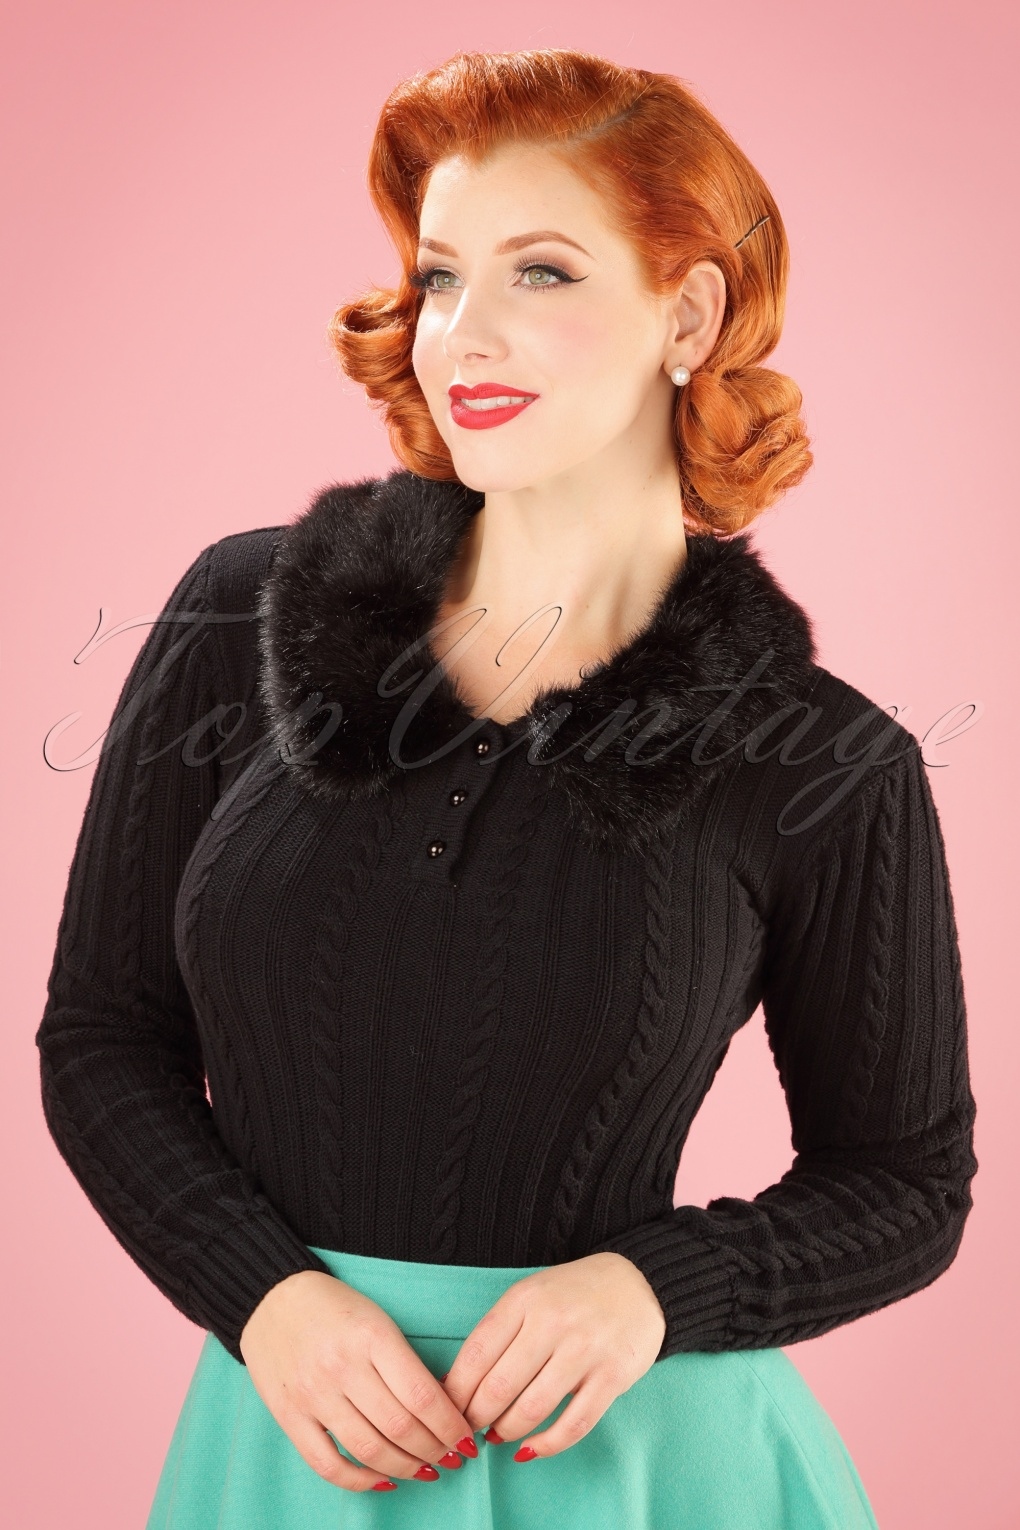 Vintage Sweaters: Cable Knit, Fair Isle Cardigans & Sweaters 40s Felicity Fur Collar Jumper in Black £59.51 AT vintagedancer.com